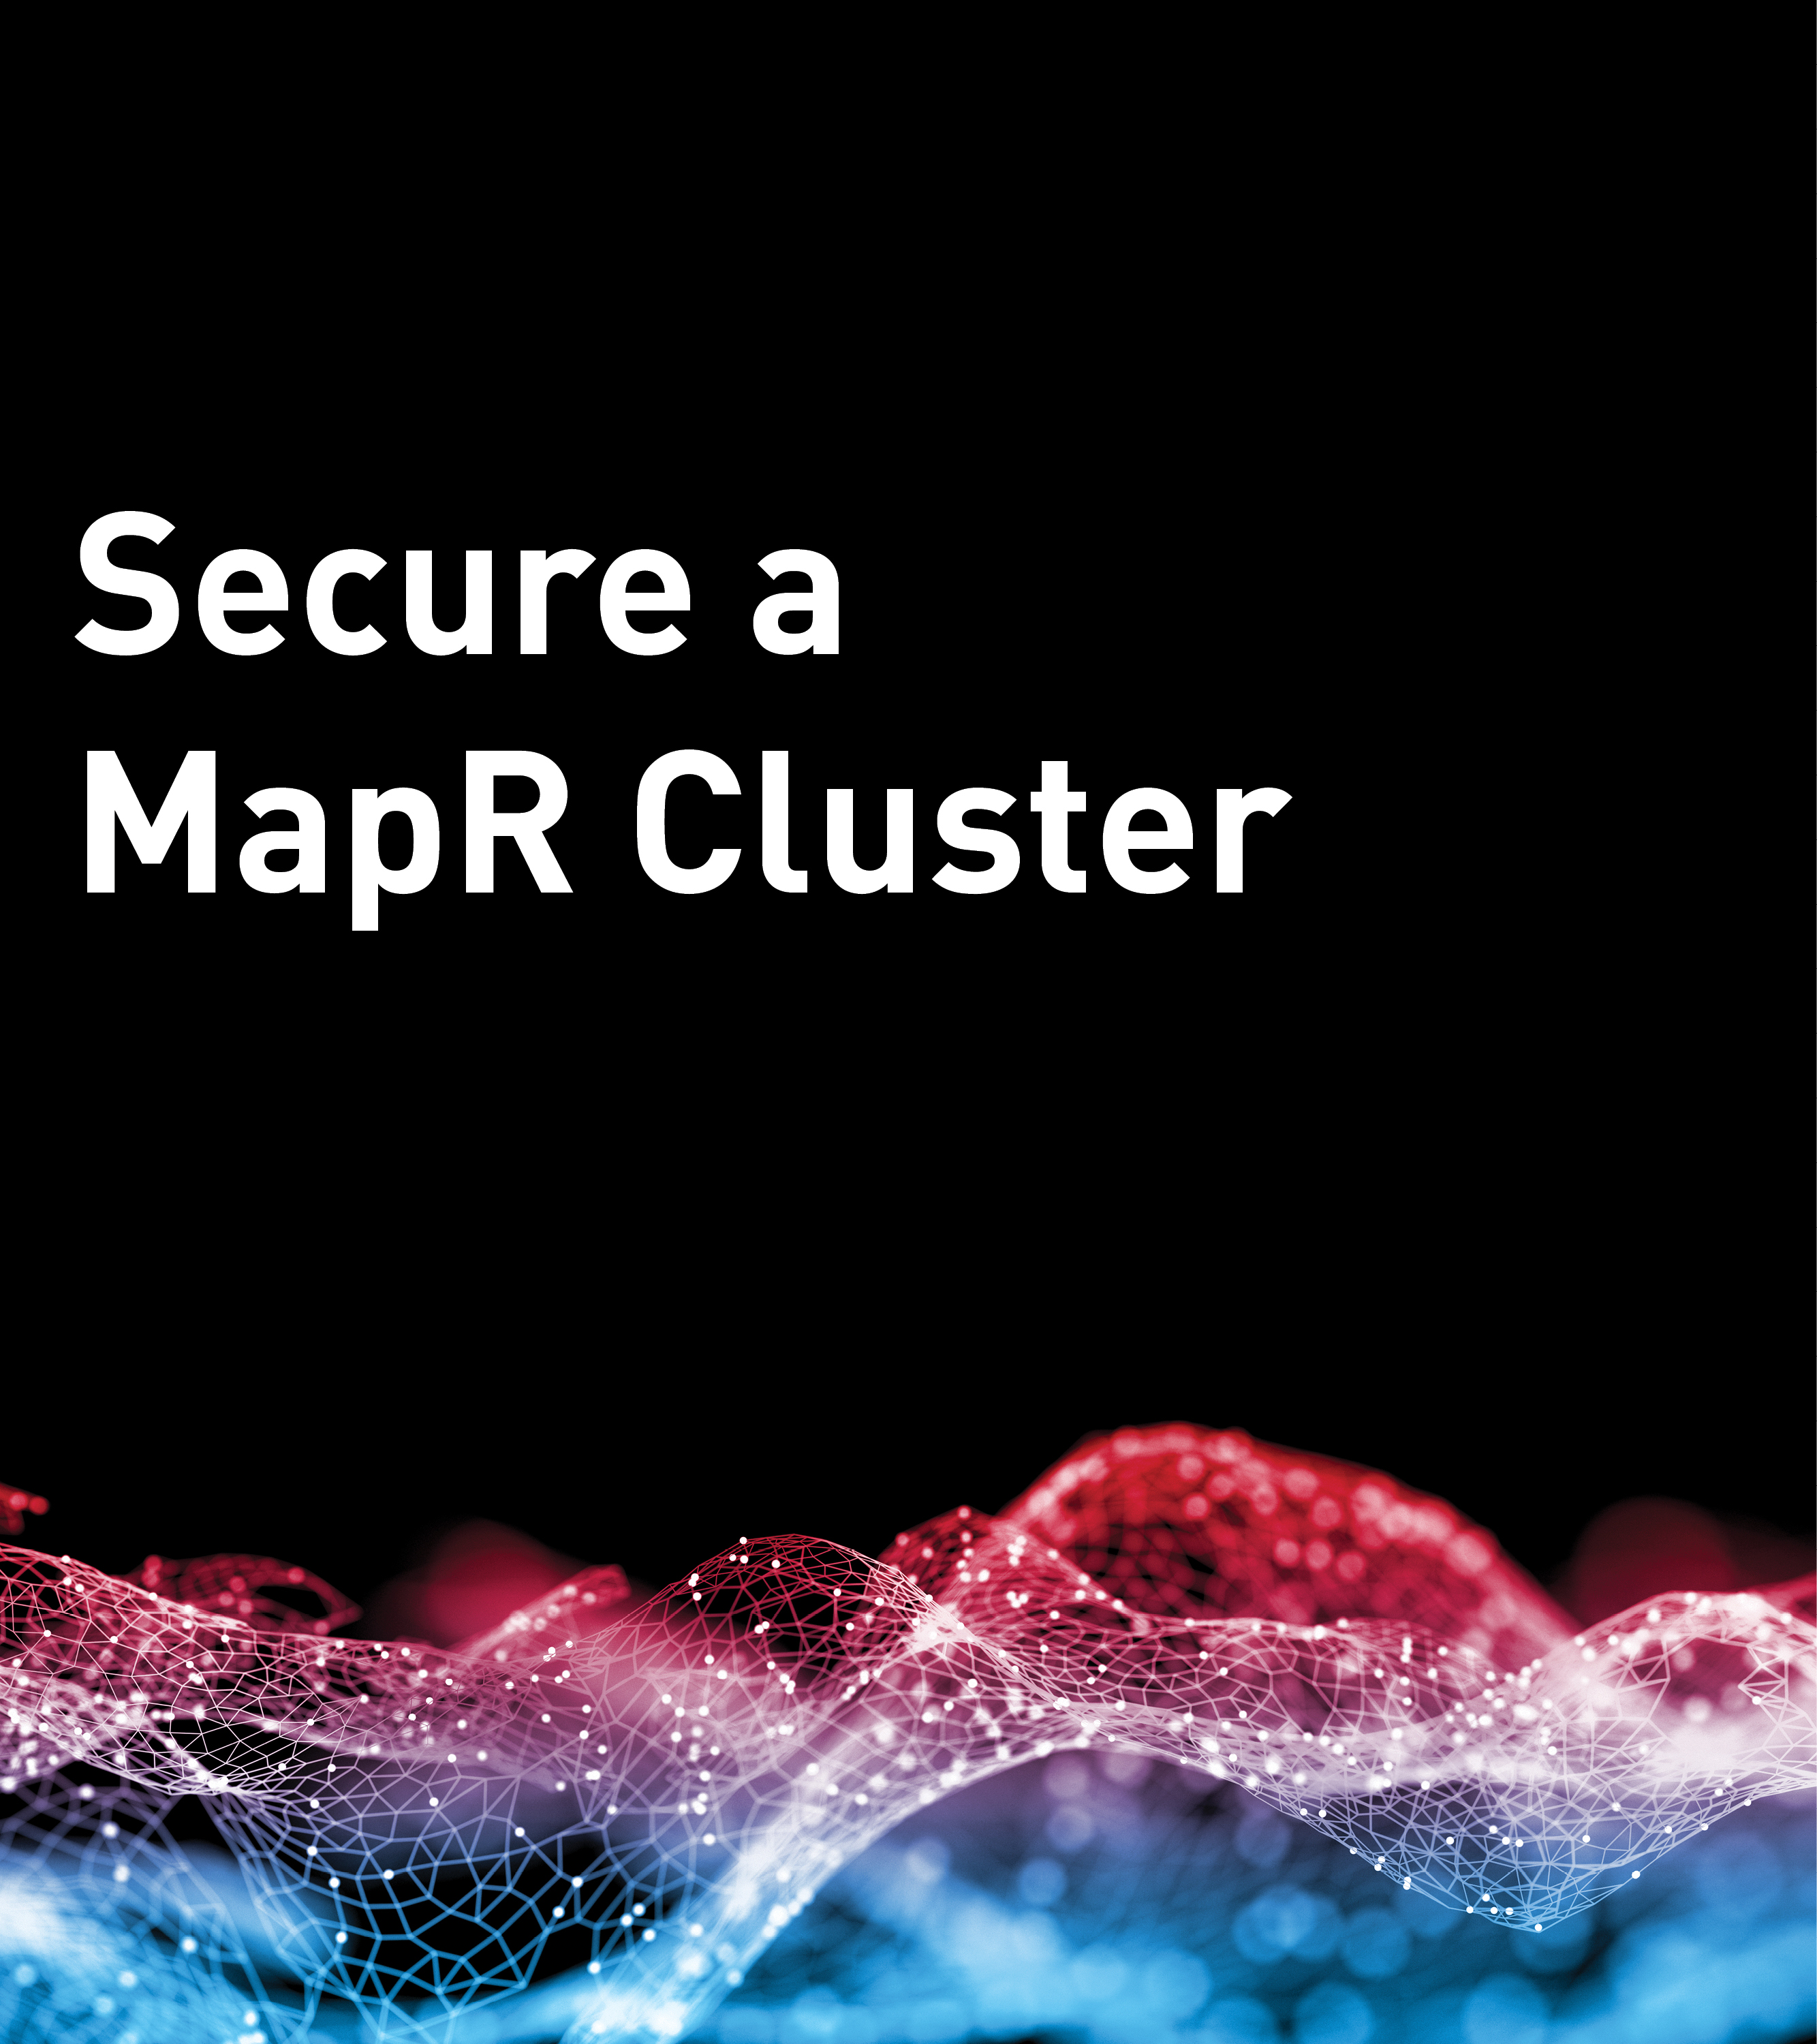 Secure a MapR Cluster